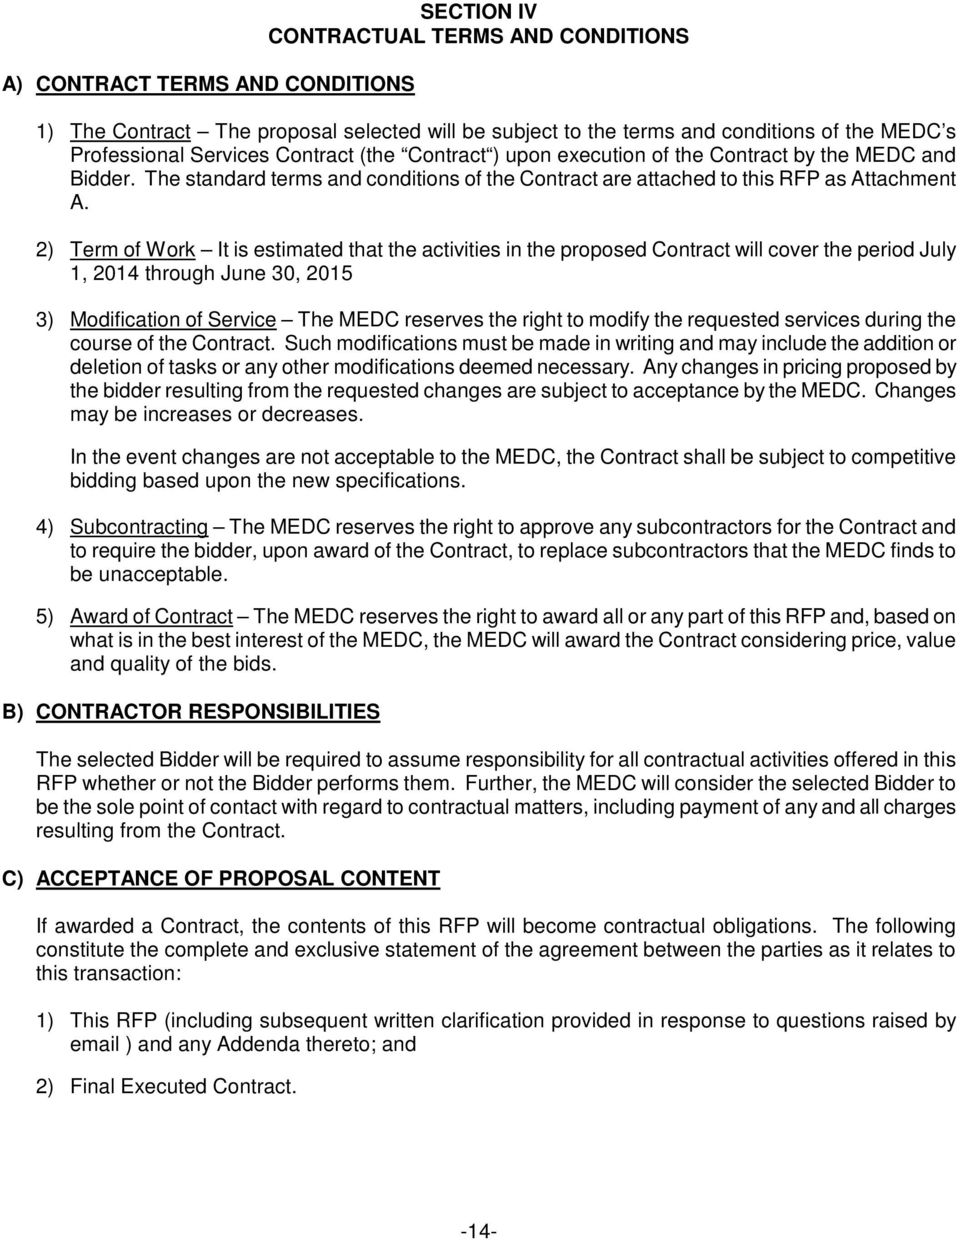 2) Term of Work It is estimated that the activities in the proposed Contract will cover the period July 1, 2014 through June 30, 2015 3) Modification of Service The MEDC reserves the right to modify